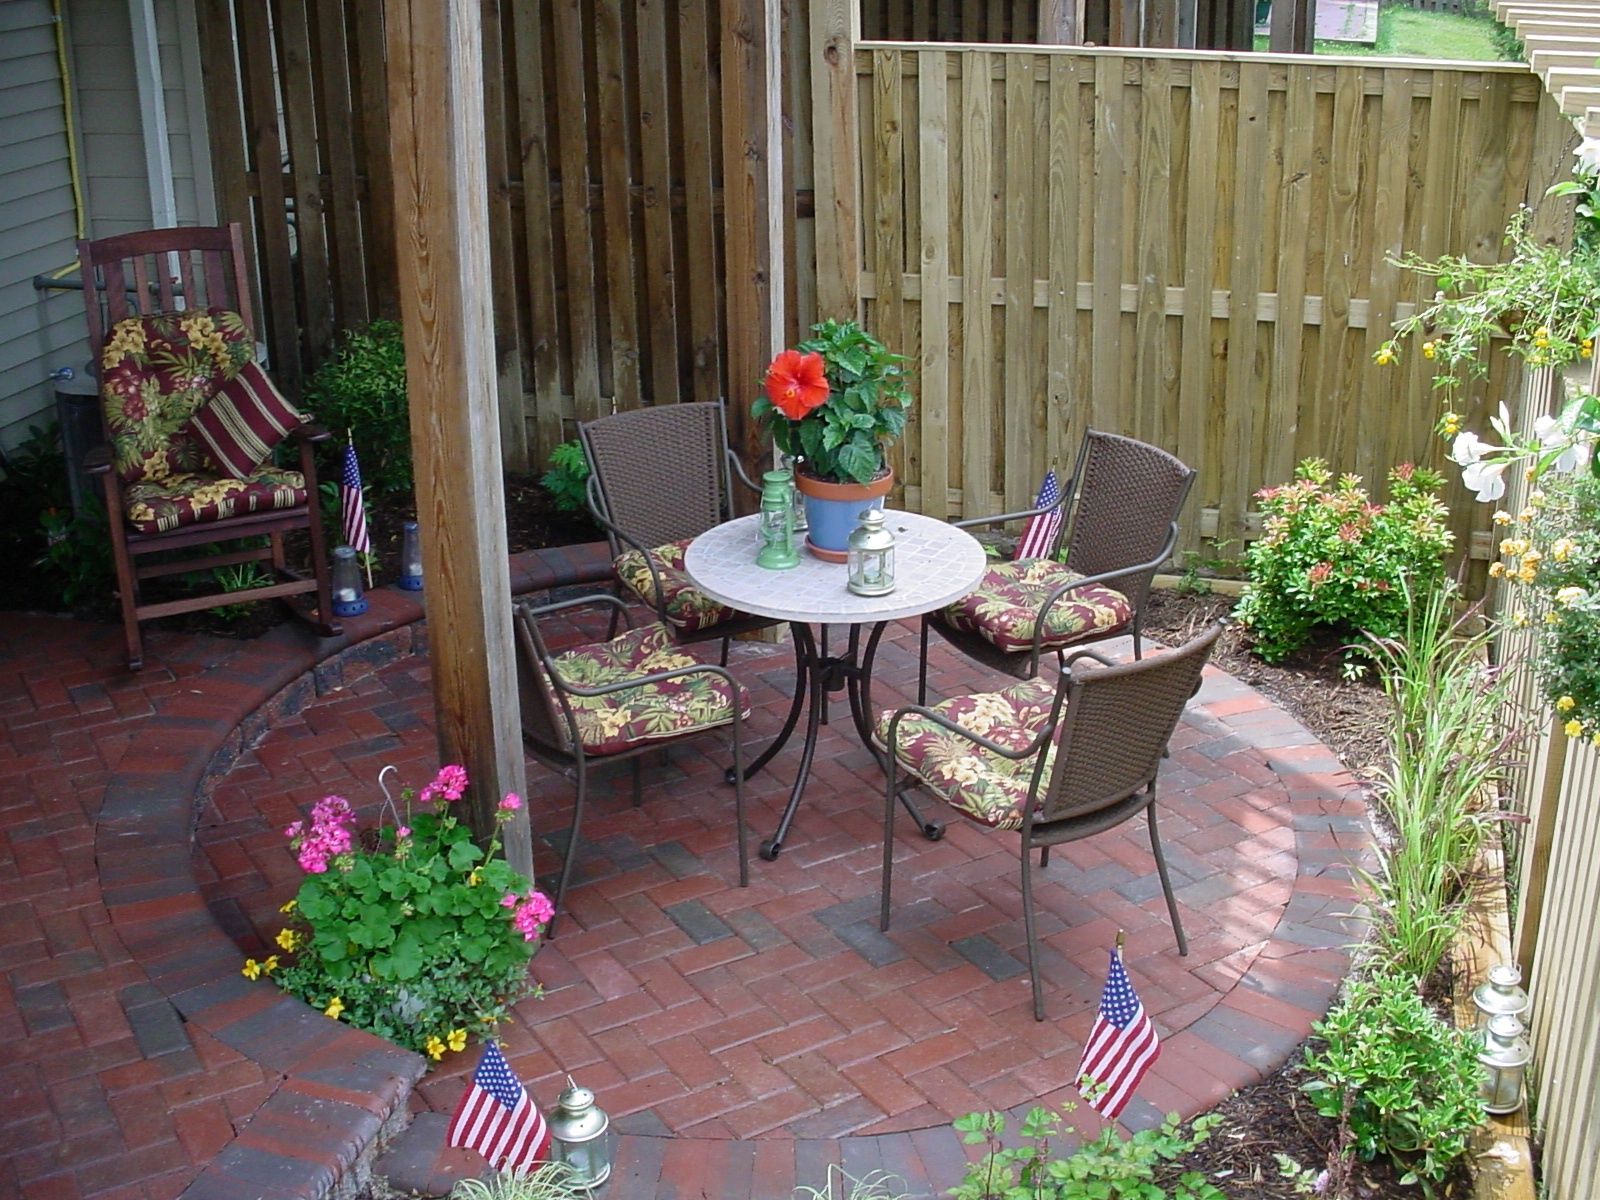 Enclosed townhouse patio with small plants and flowers